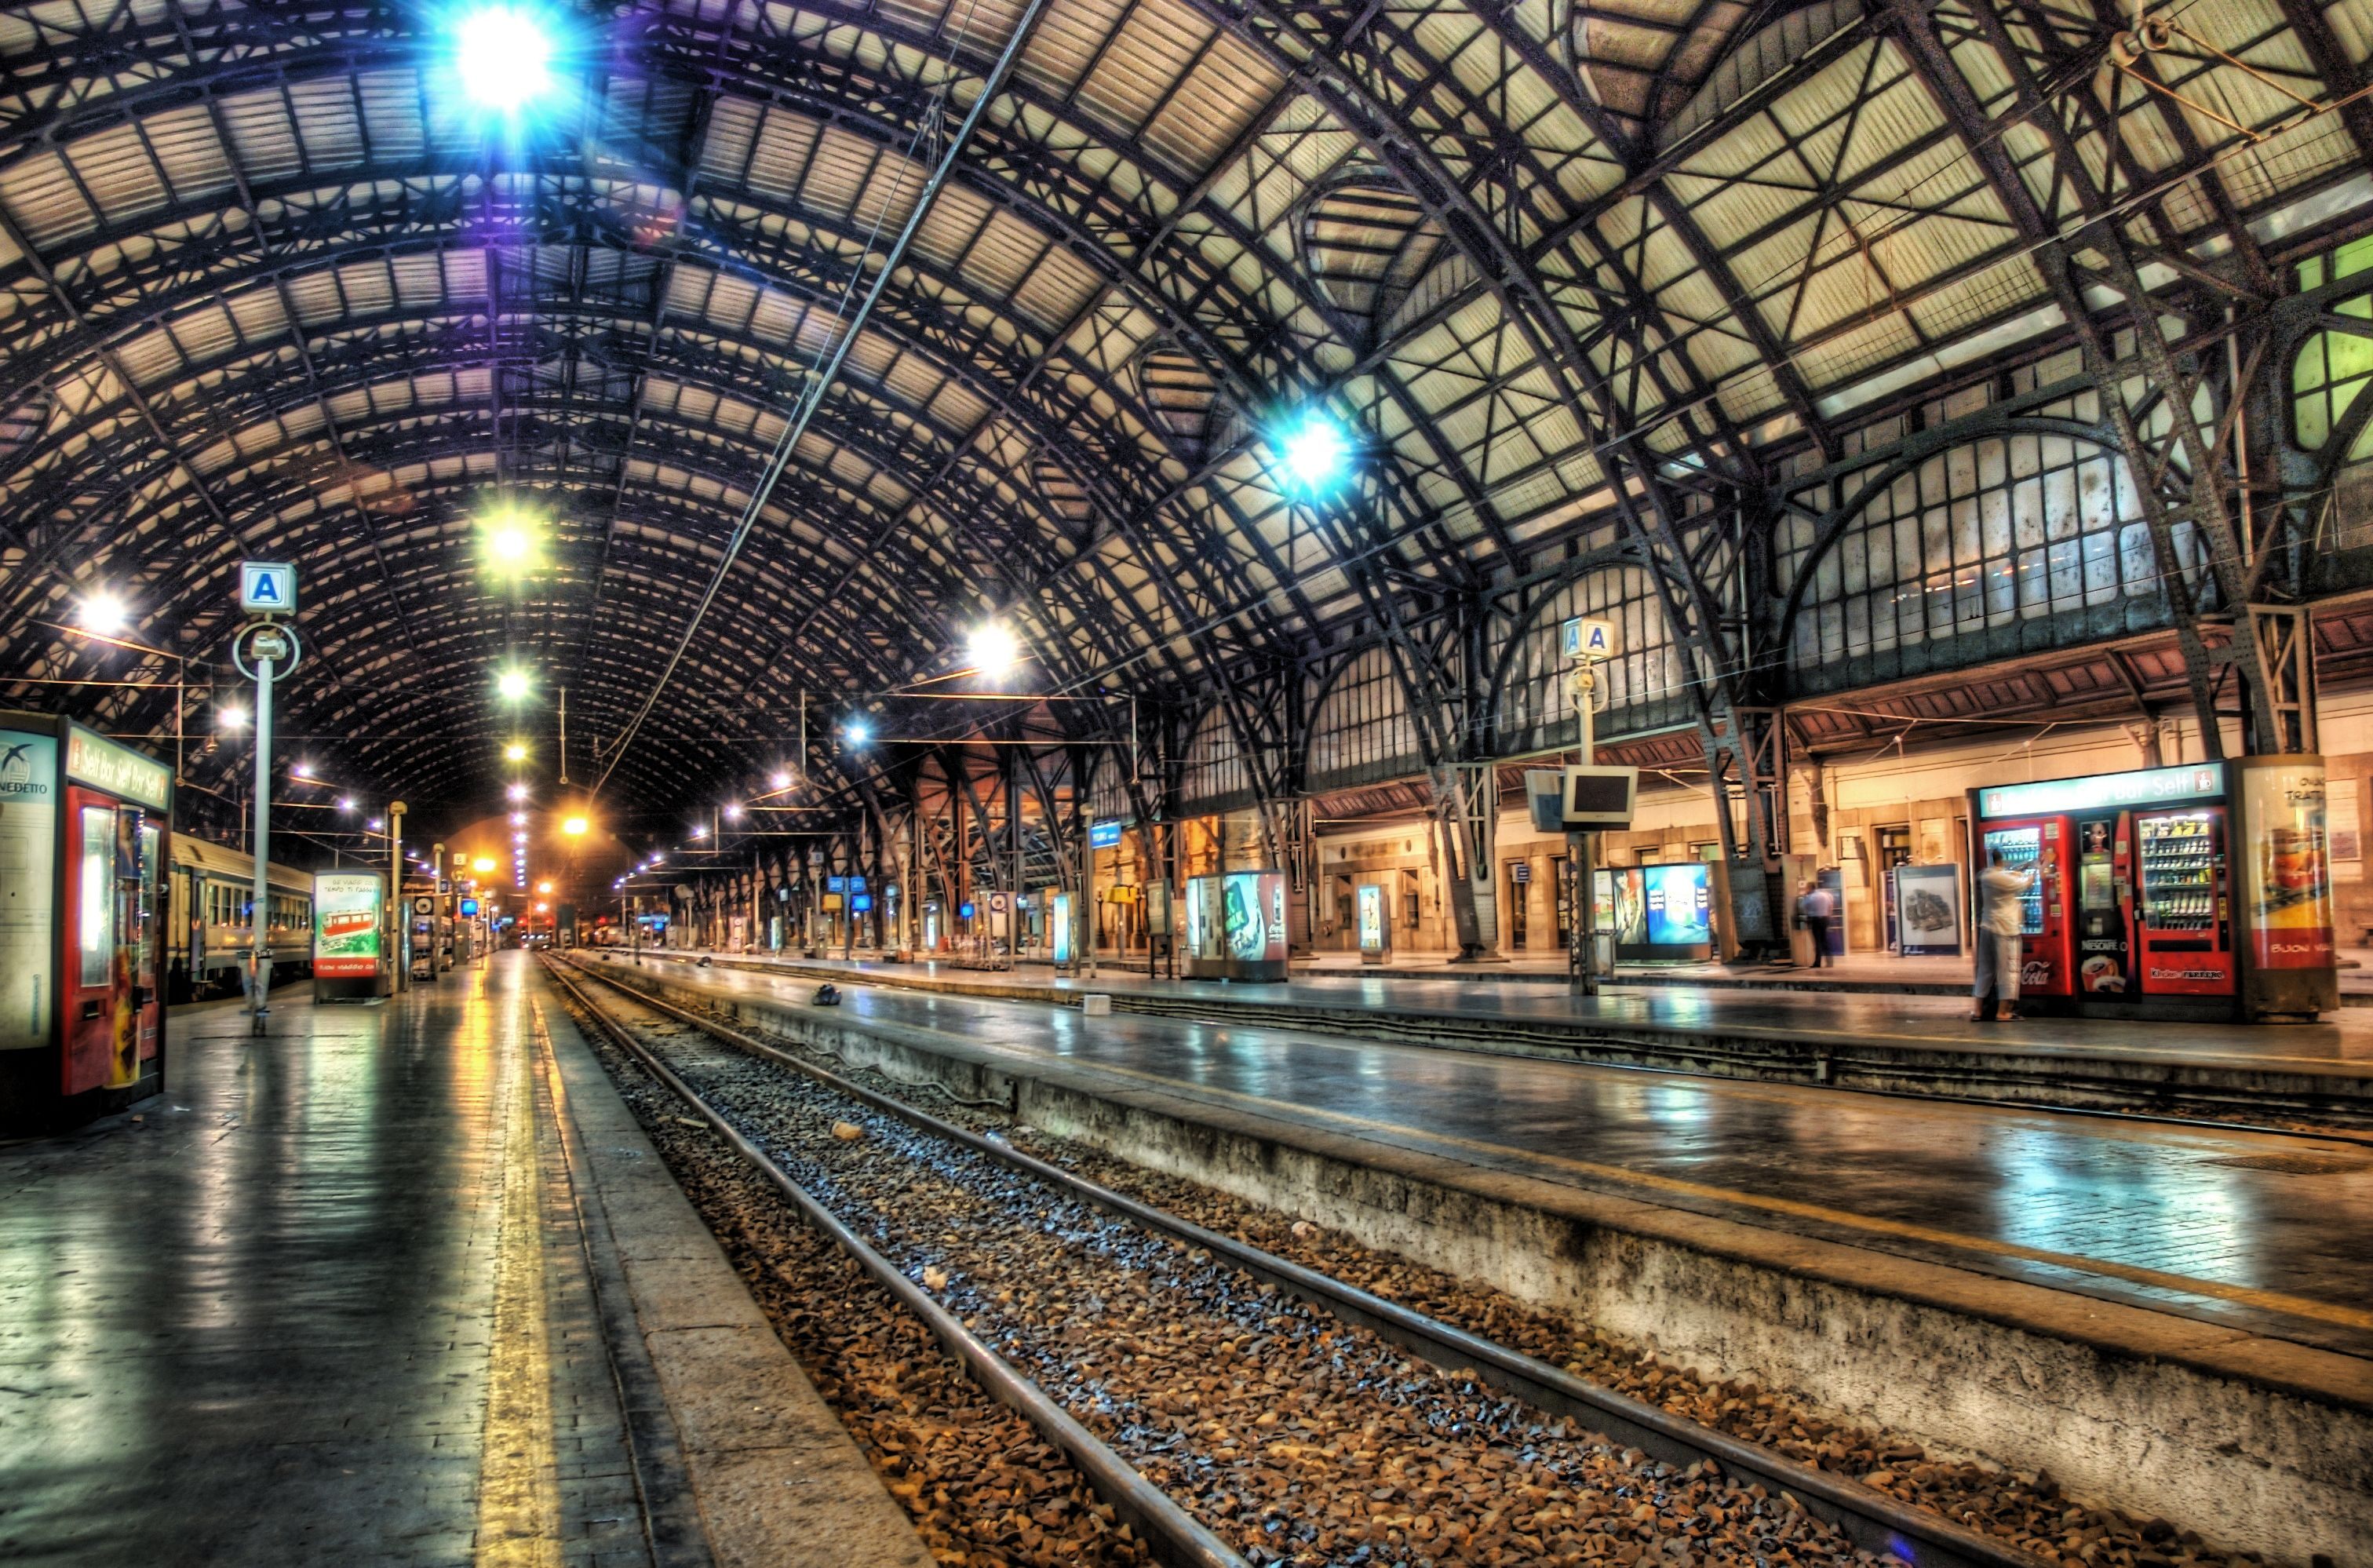 Milano Italy Stazione Centrale Hdr Photography Train Station Hdr Photos